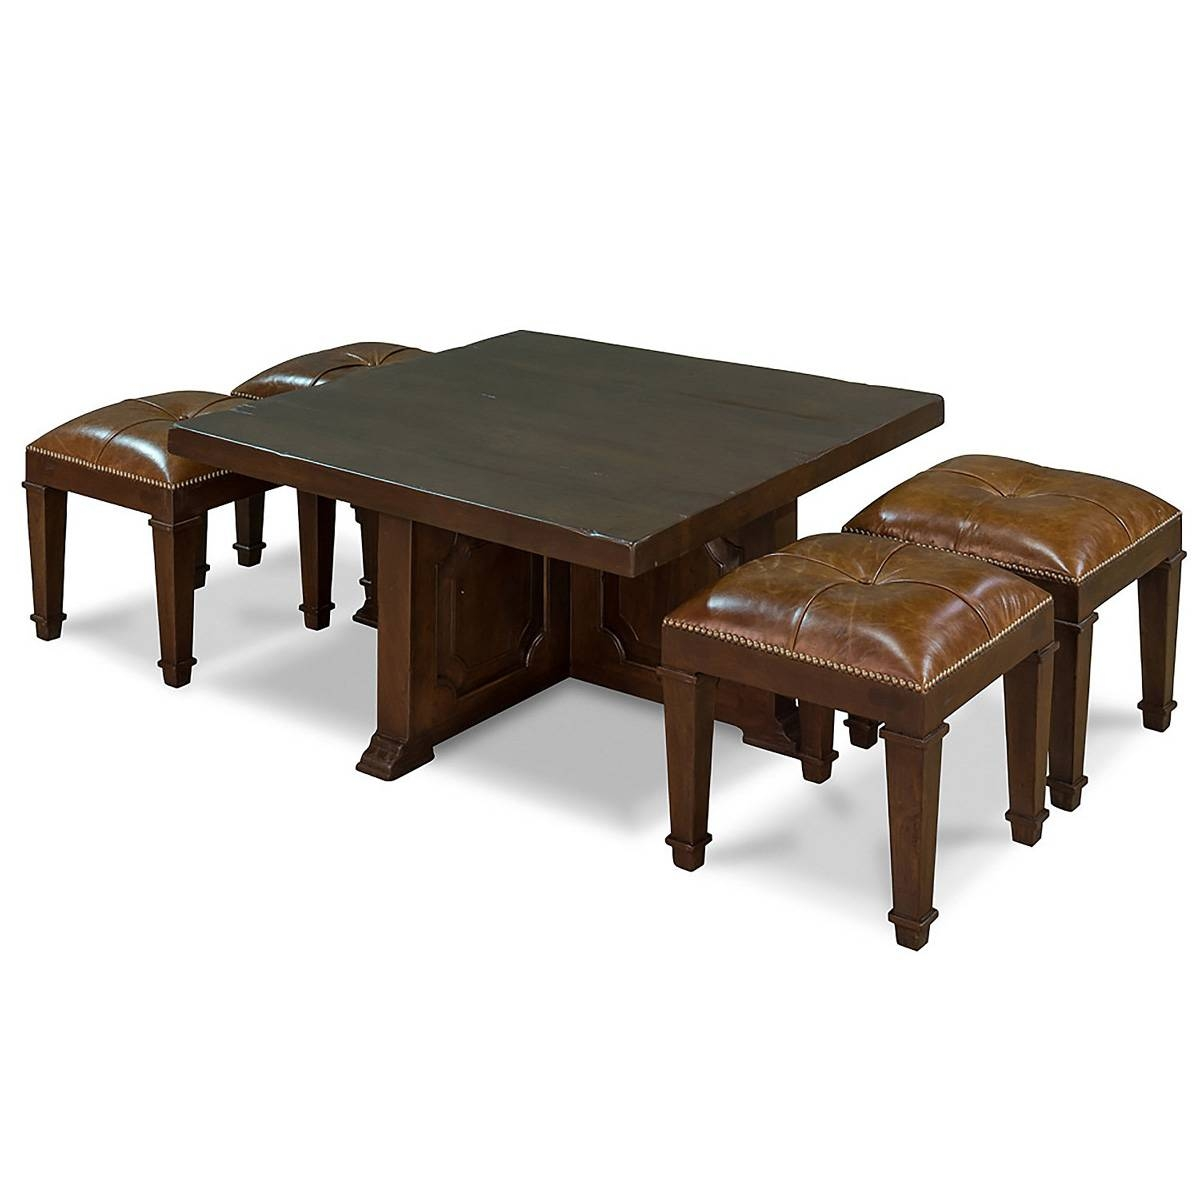 Popular Photo of Coffee Tables With Nesting Stools